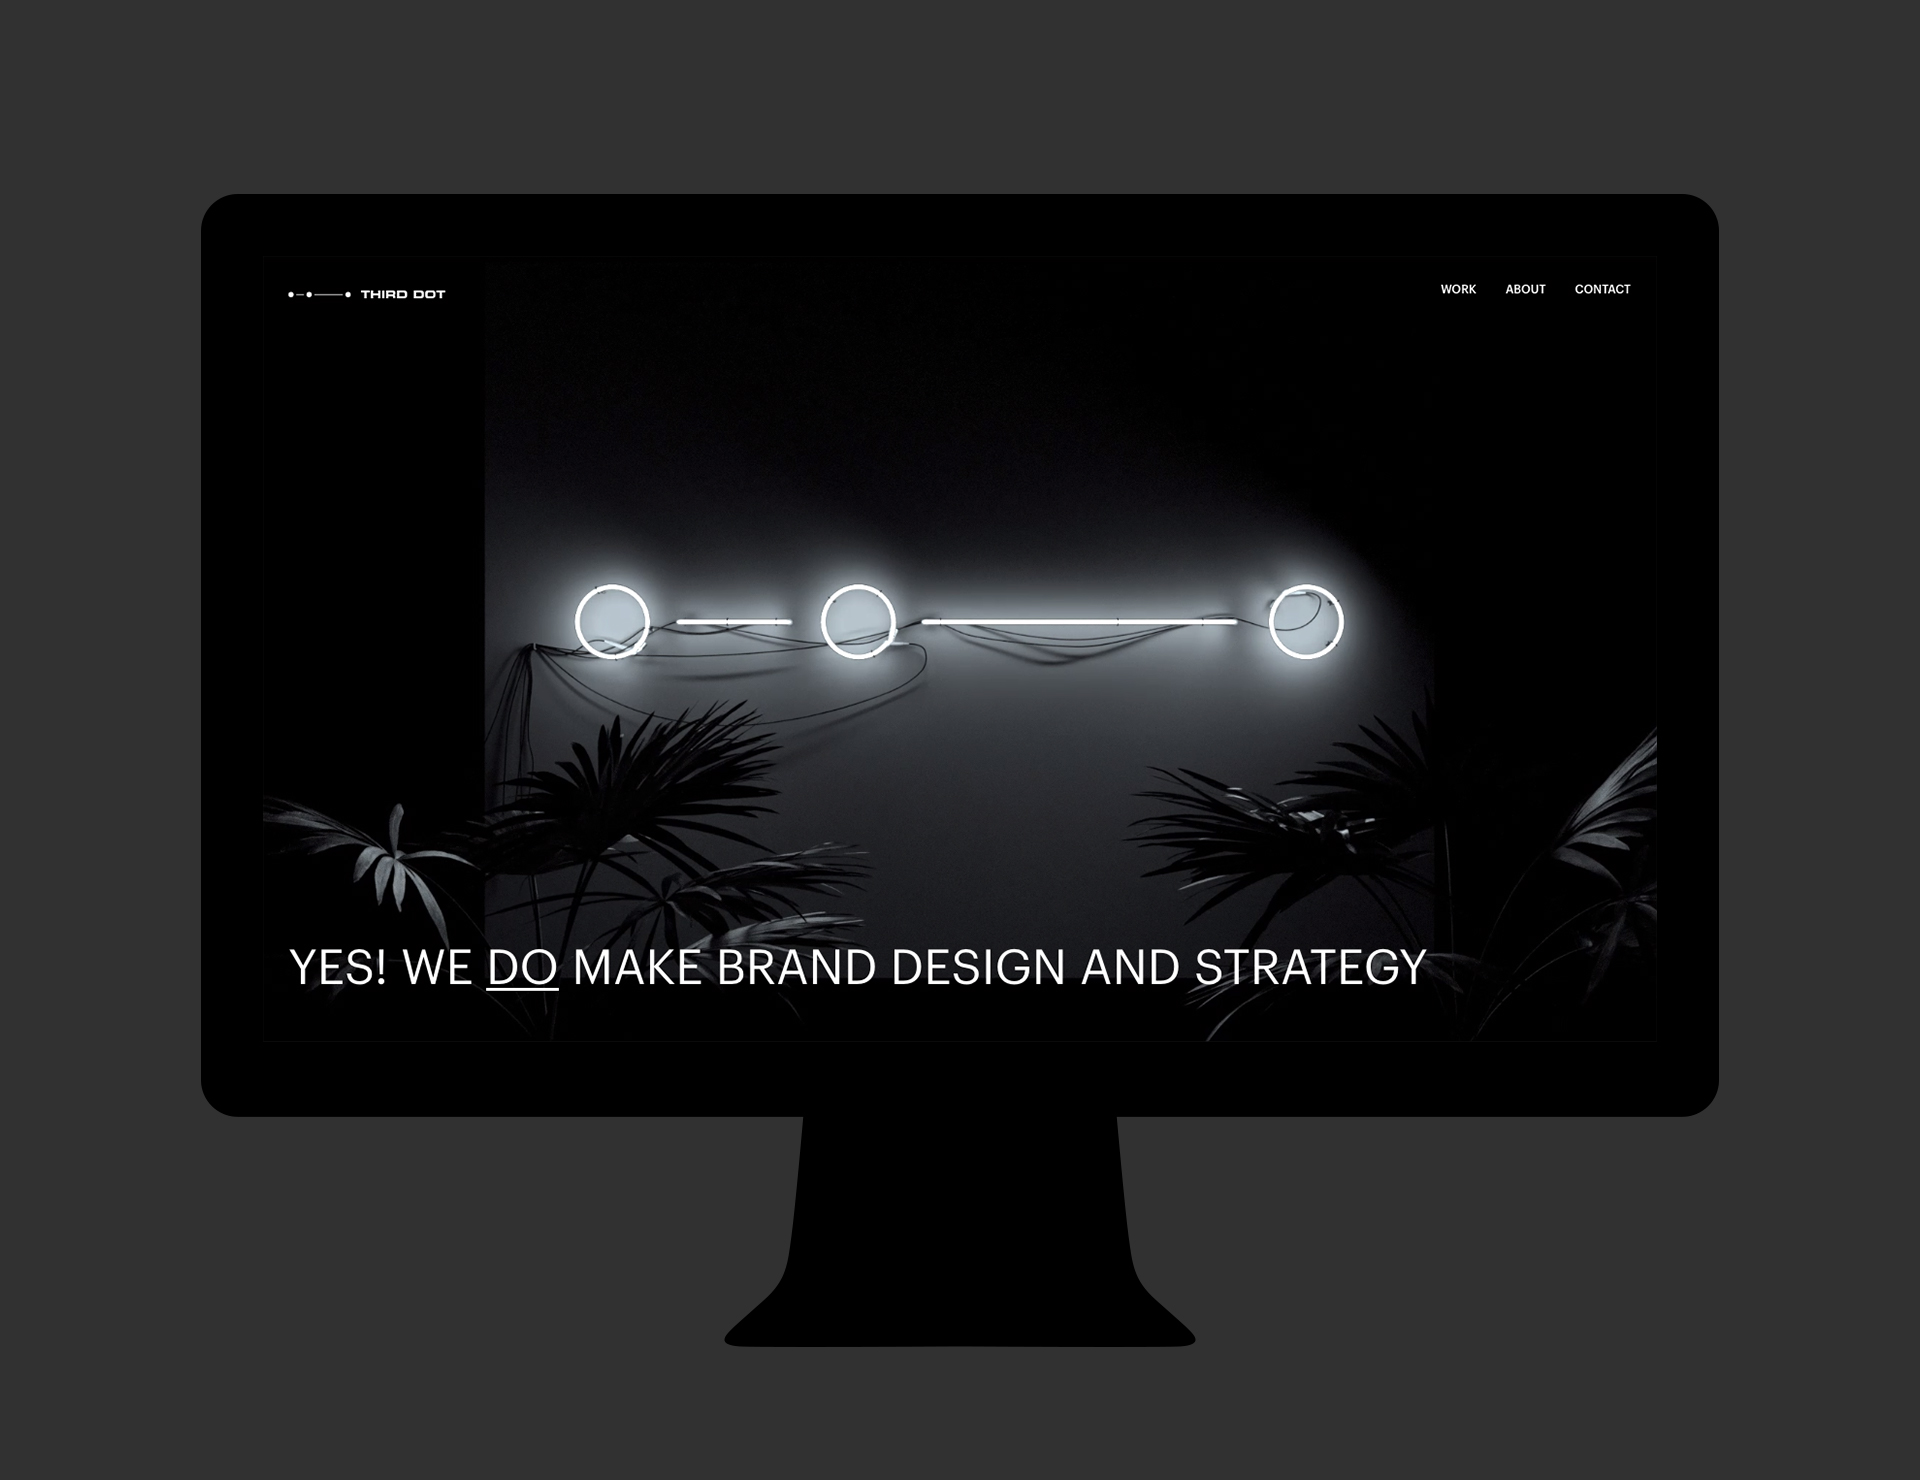 02 Third Dot Web Design Brand Identity desktop frontpage